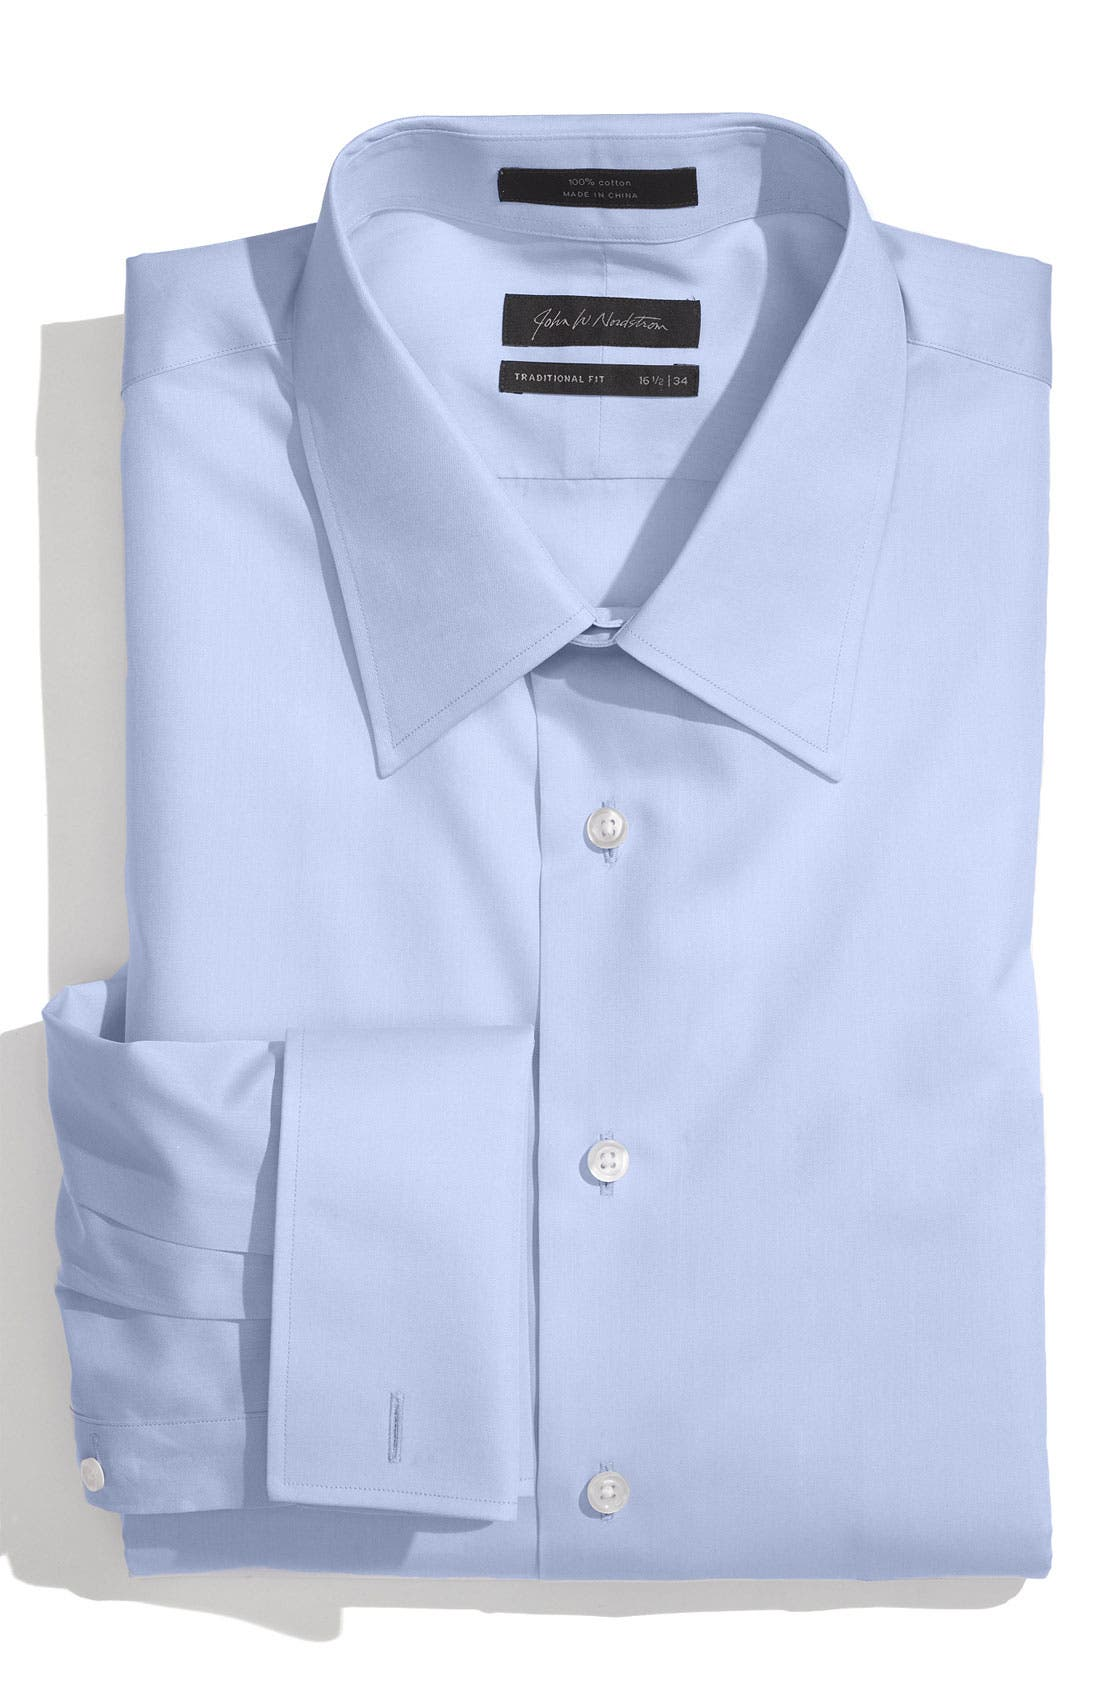 Alternate Image 1 Selected - John W. Nordstrom® Traditional Fit French Cuff Dress Shirt